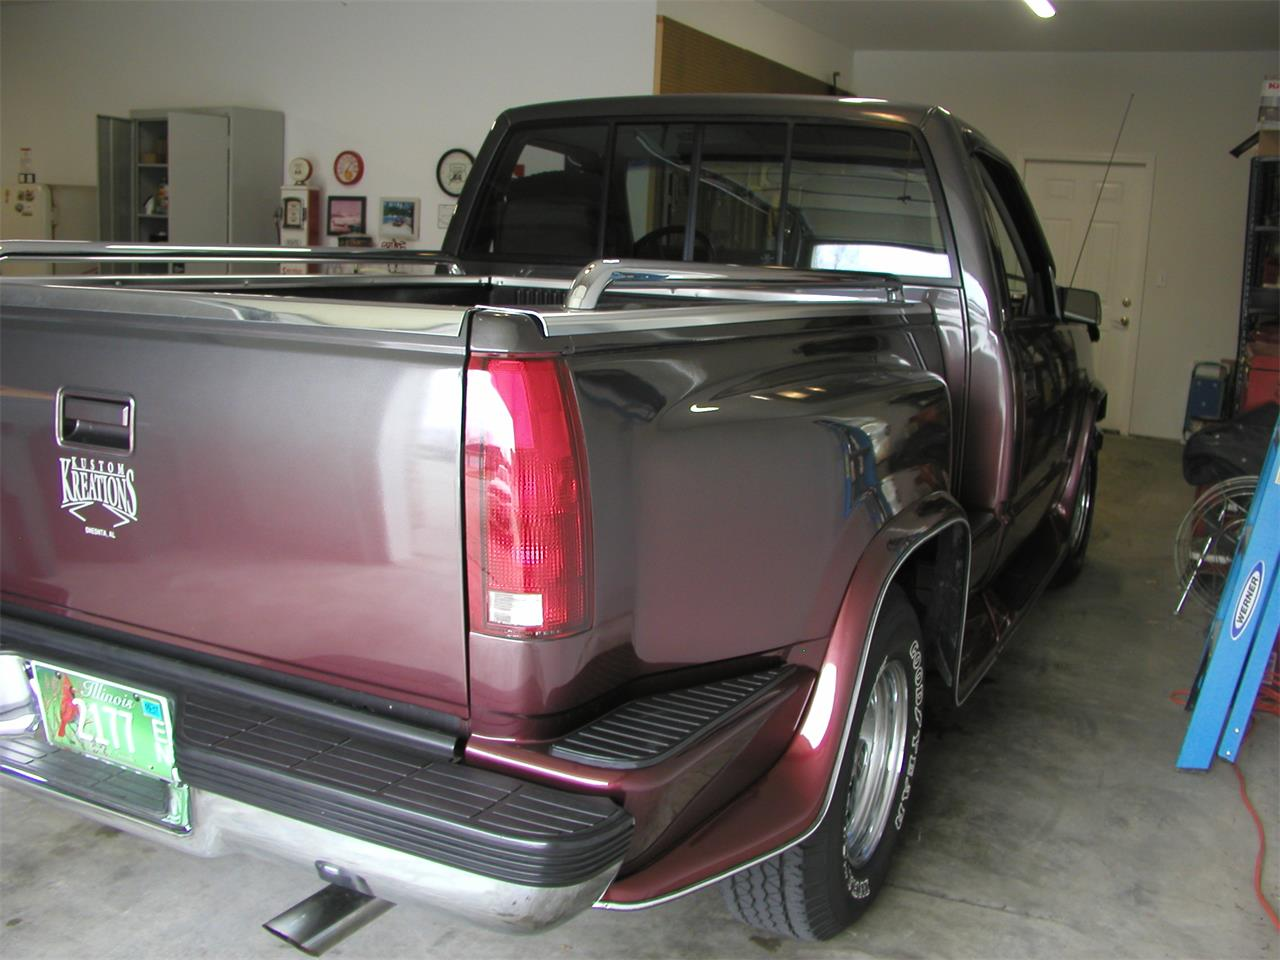 Large Picture of '92 Chevrolet Pickup located in Granite City Illinois - $11,000.00 Offered by a Private Seller - KNIK